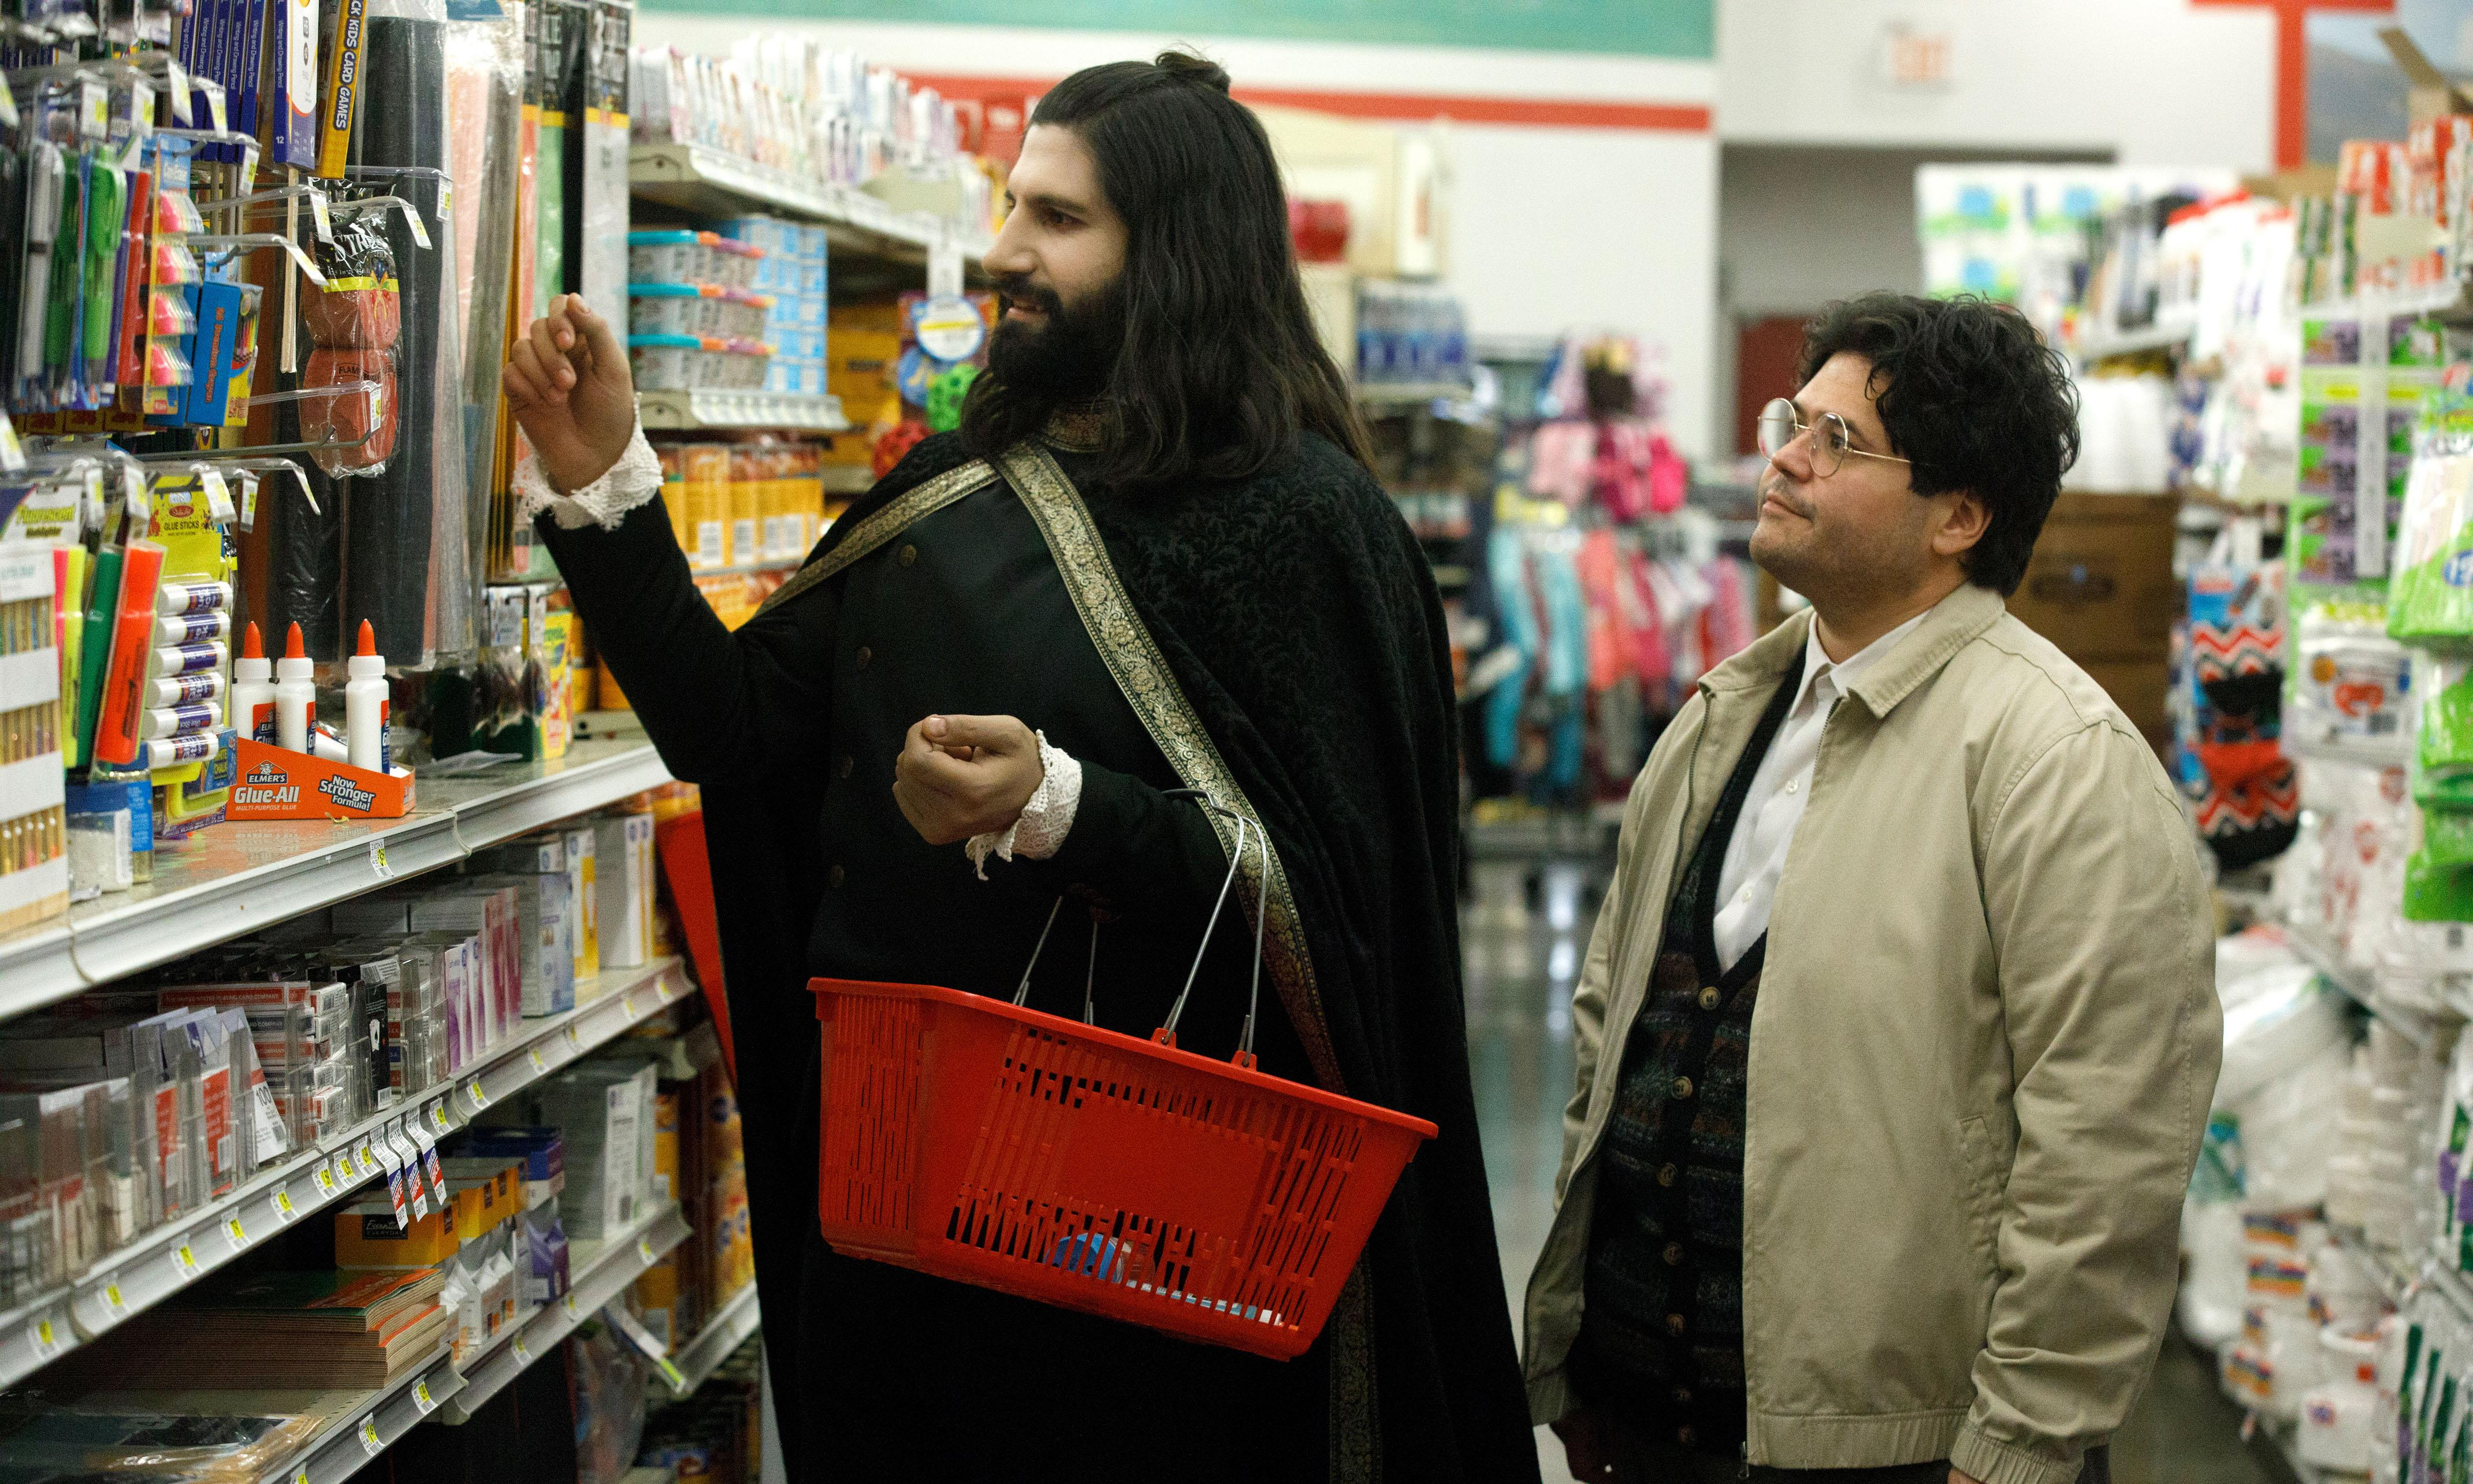 What We Do In the Shadows review – the undead prove dead funny